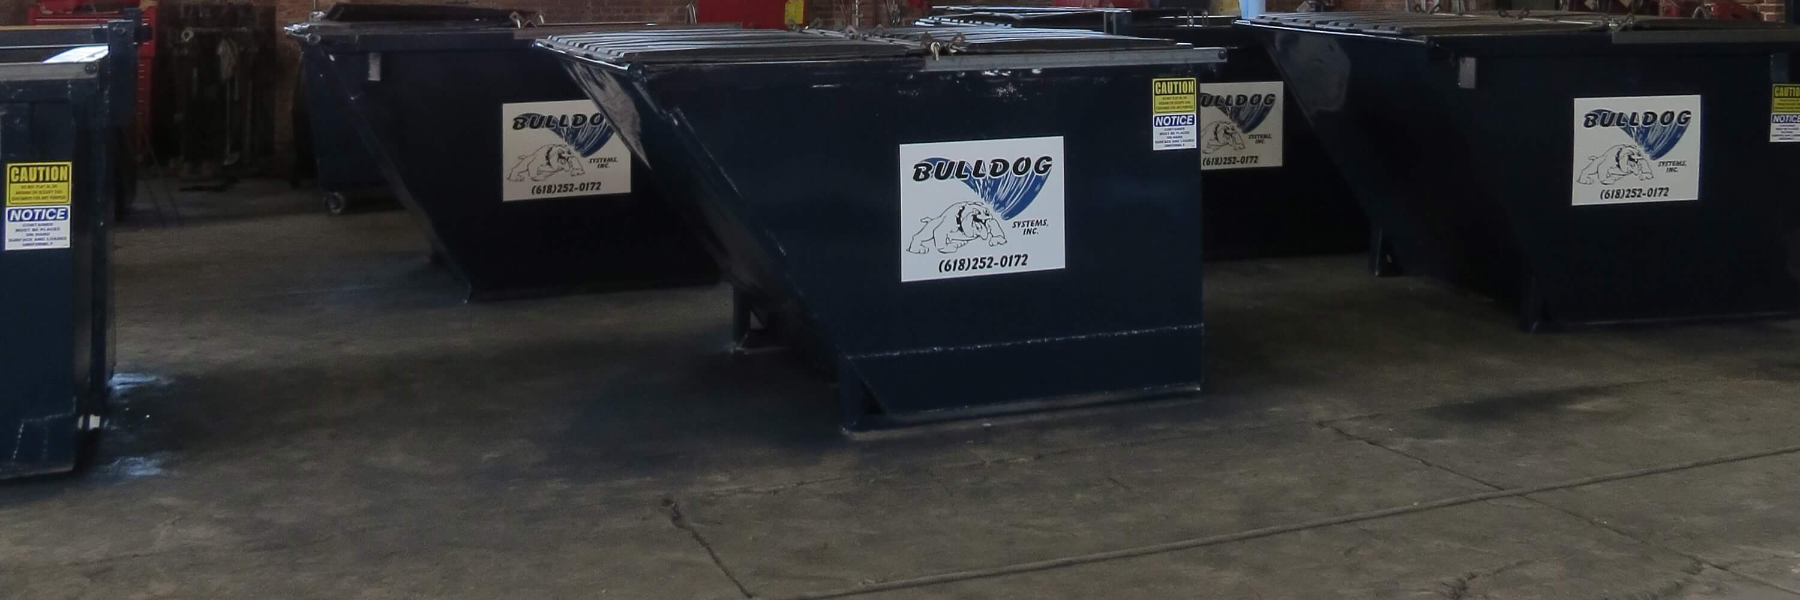 dumpster rental services bulldog systems llc